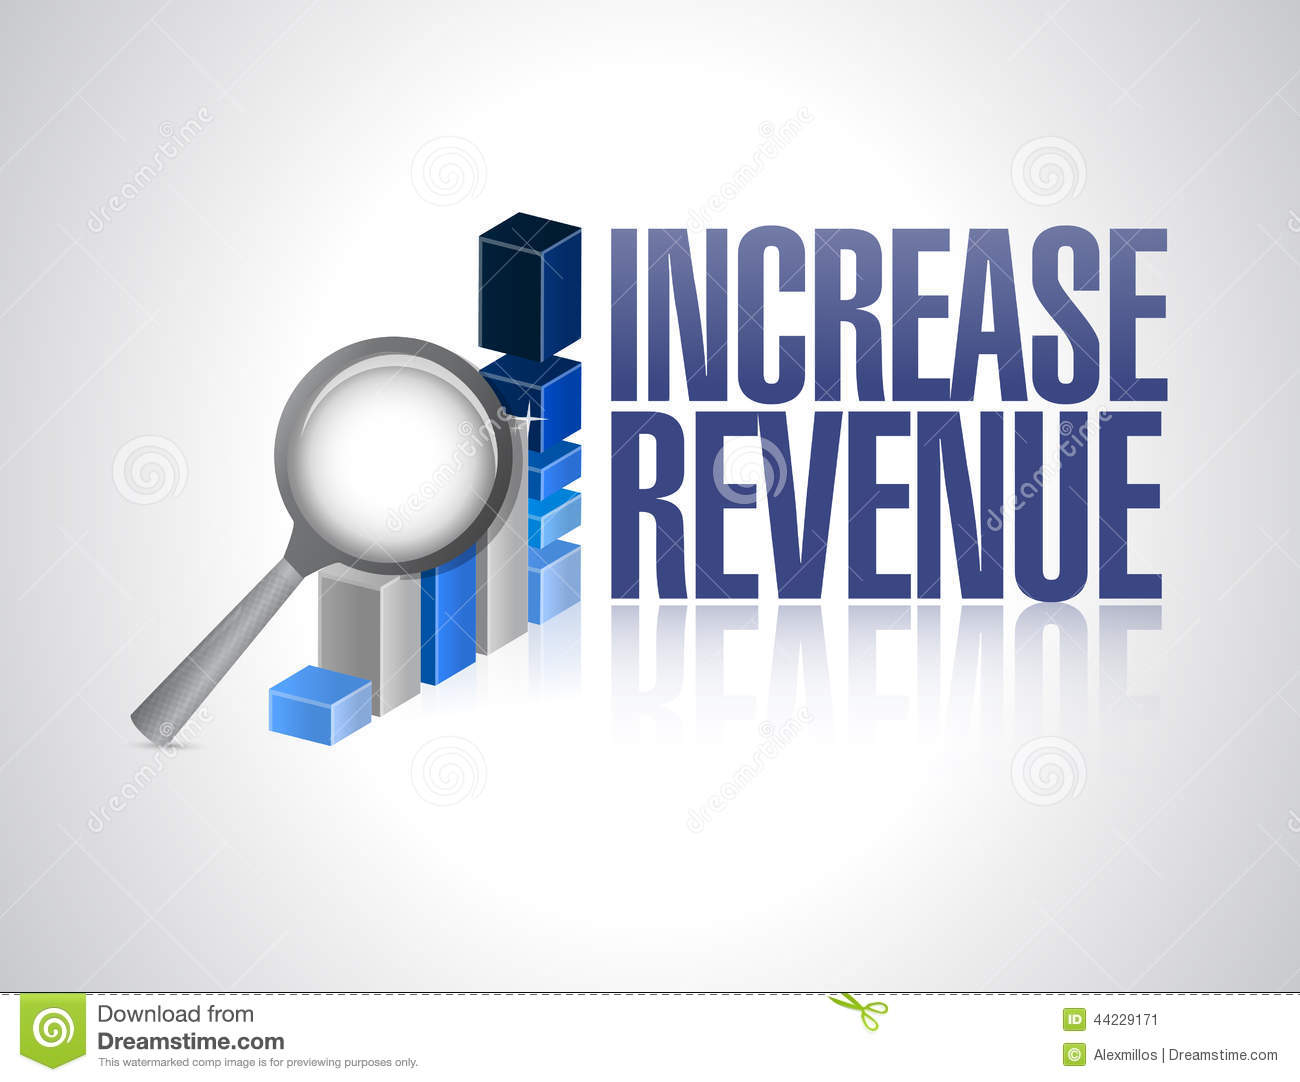 15 Surefire Ways to Increase Revenue in Your Business